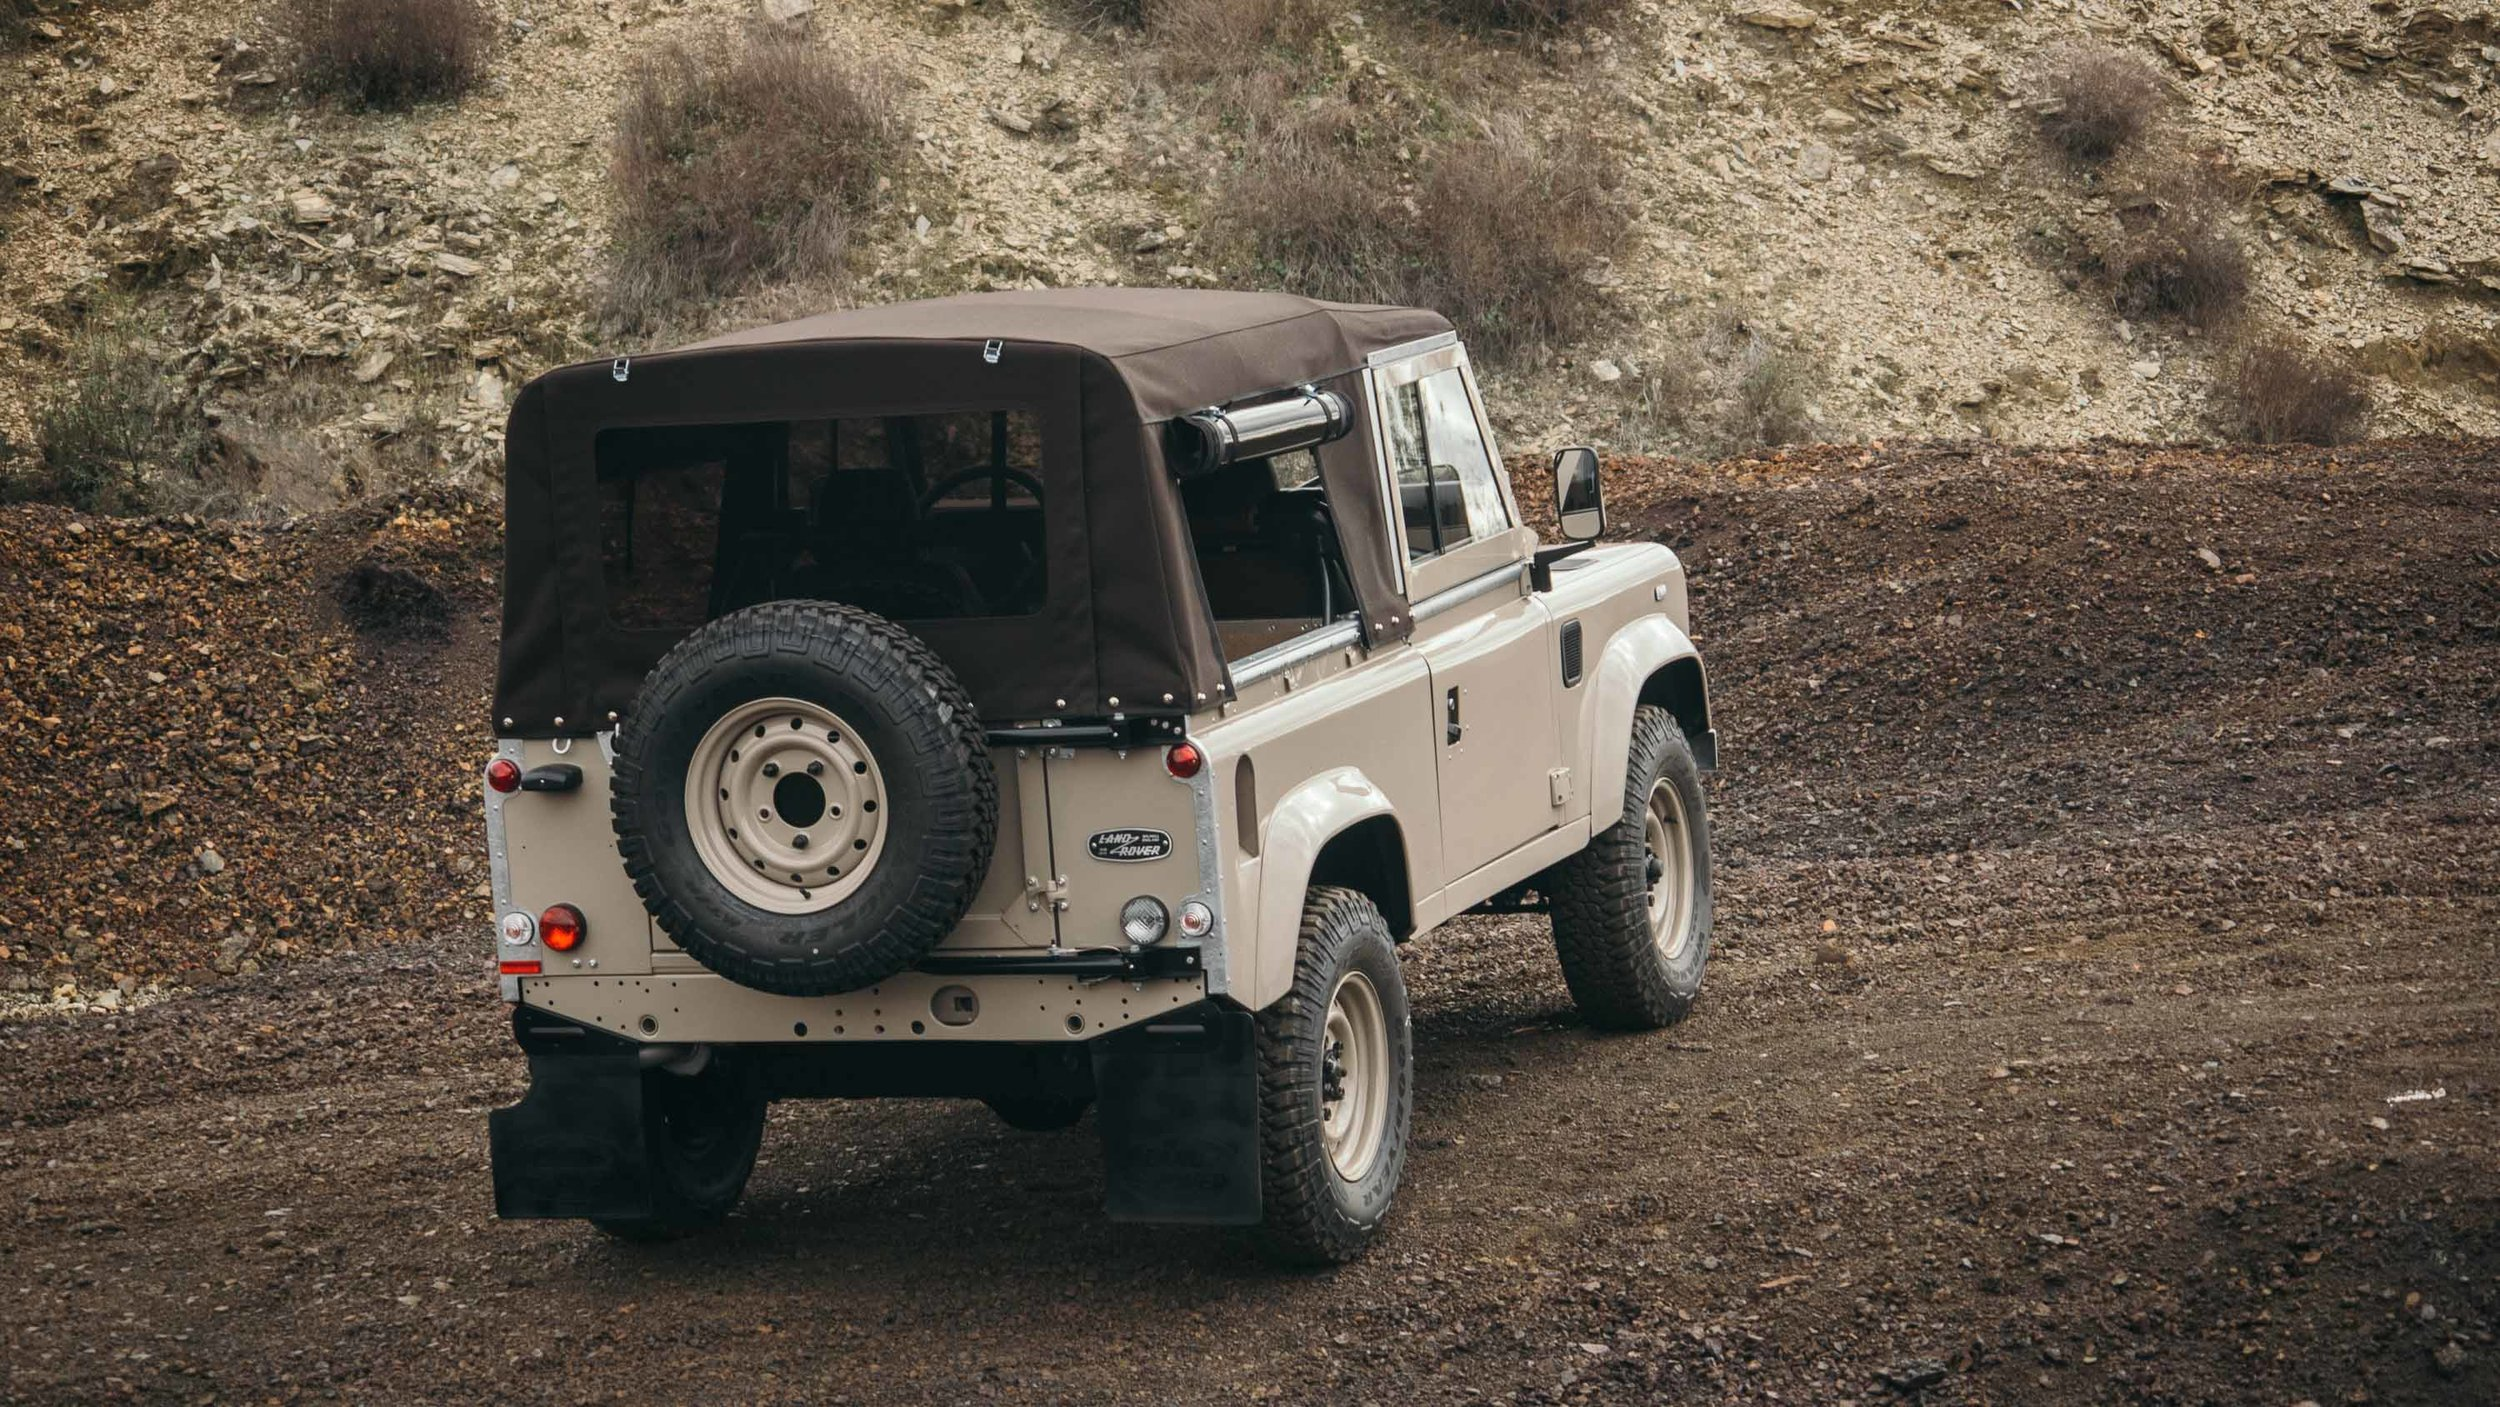 coolnvintage Land Rover Defender (79 of 81).jpg